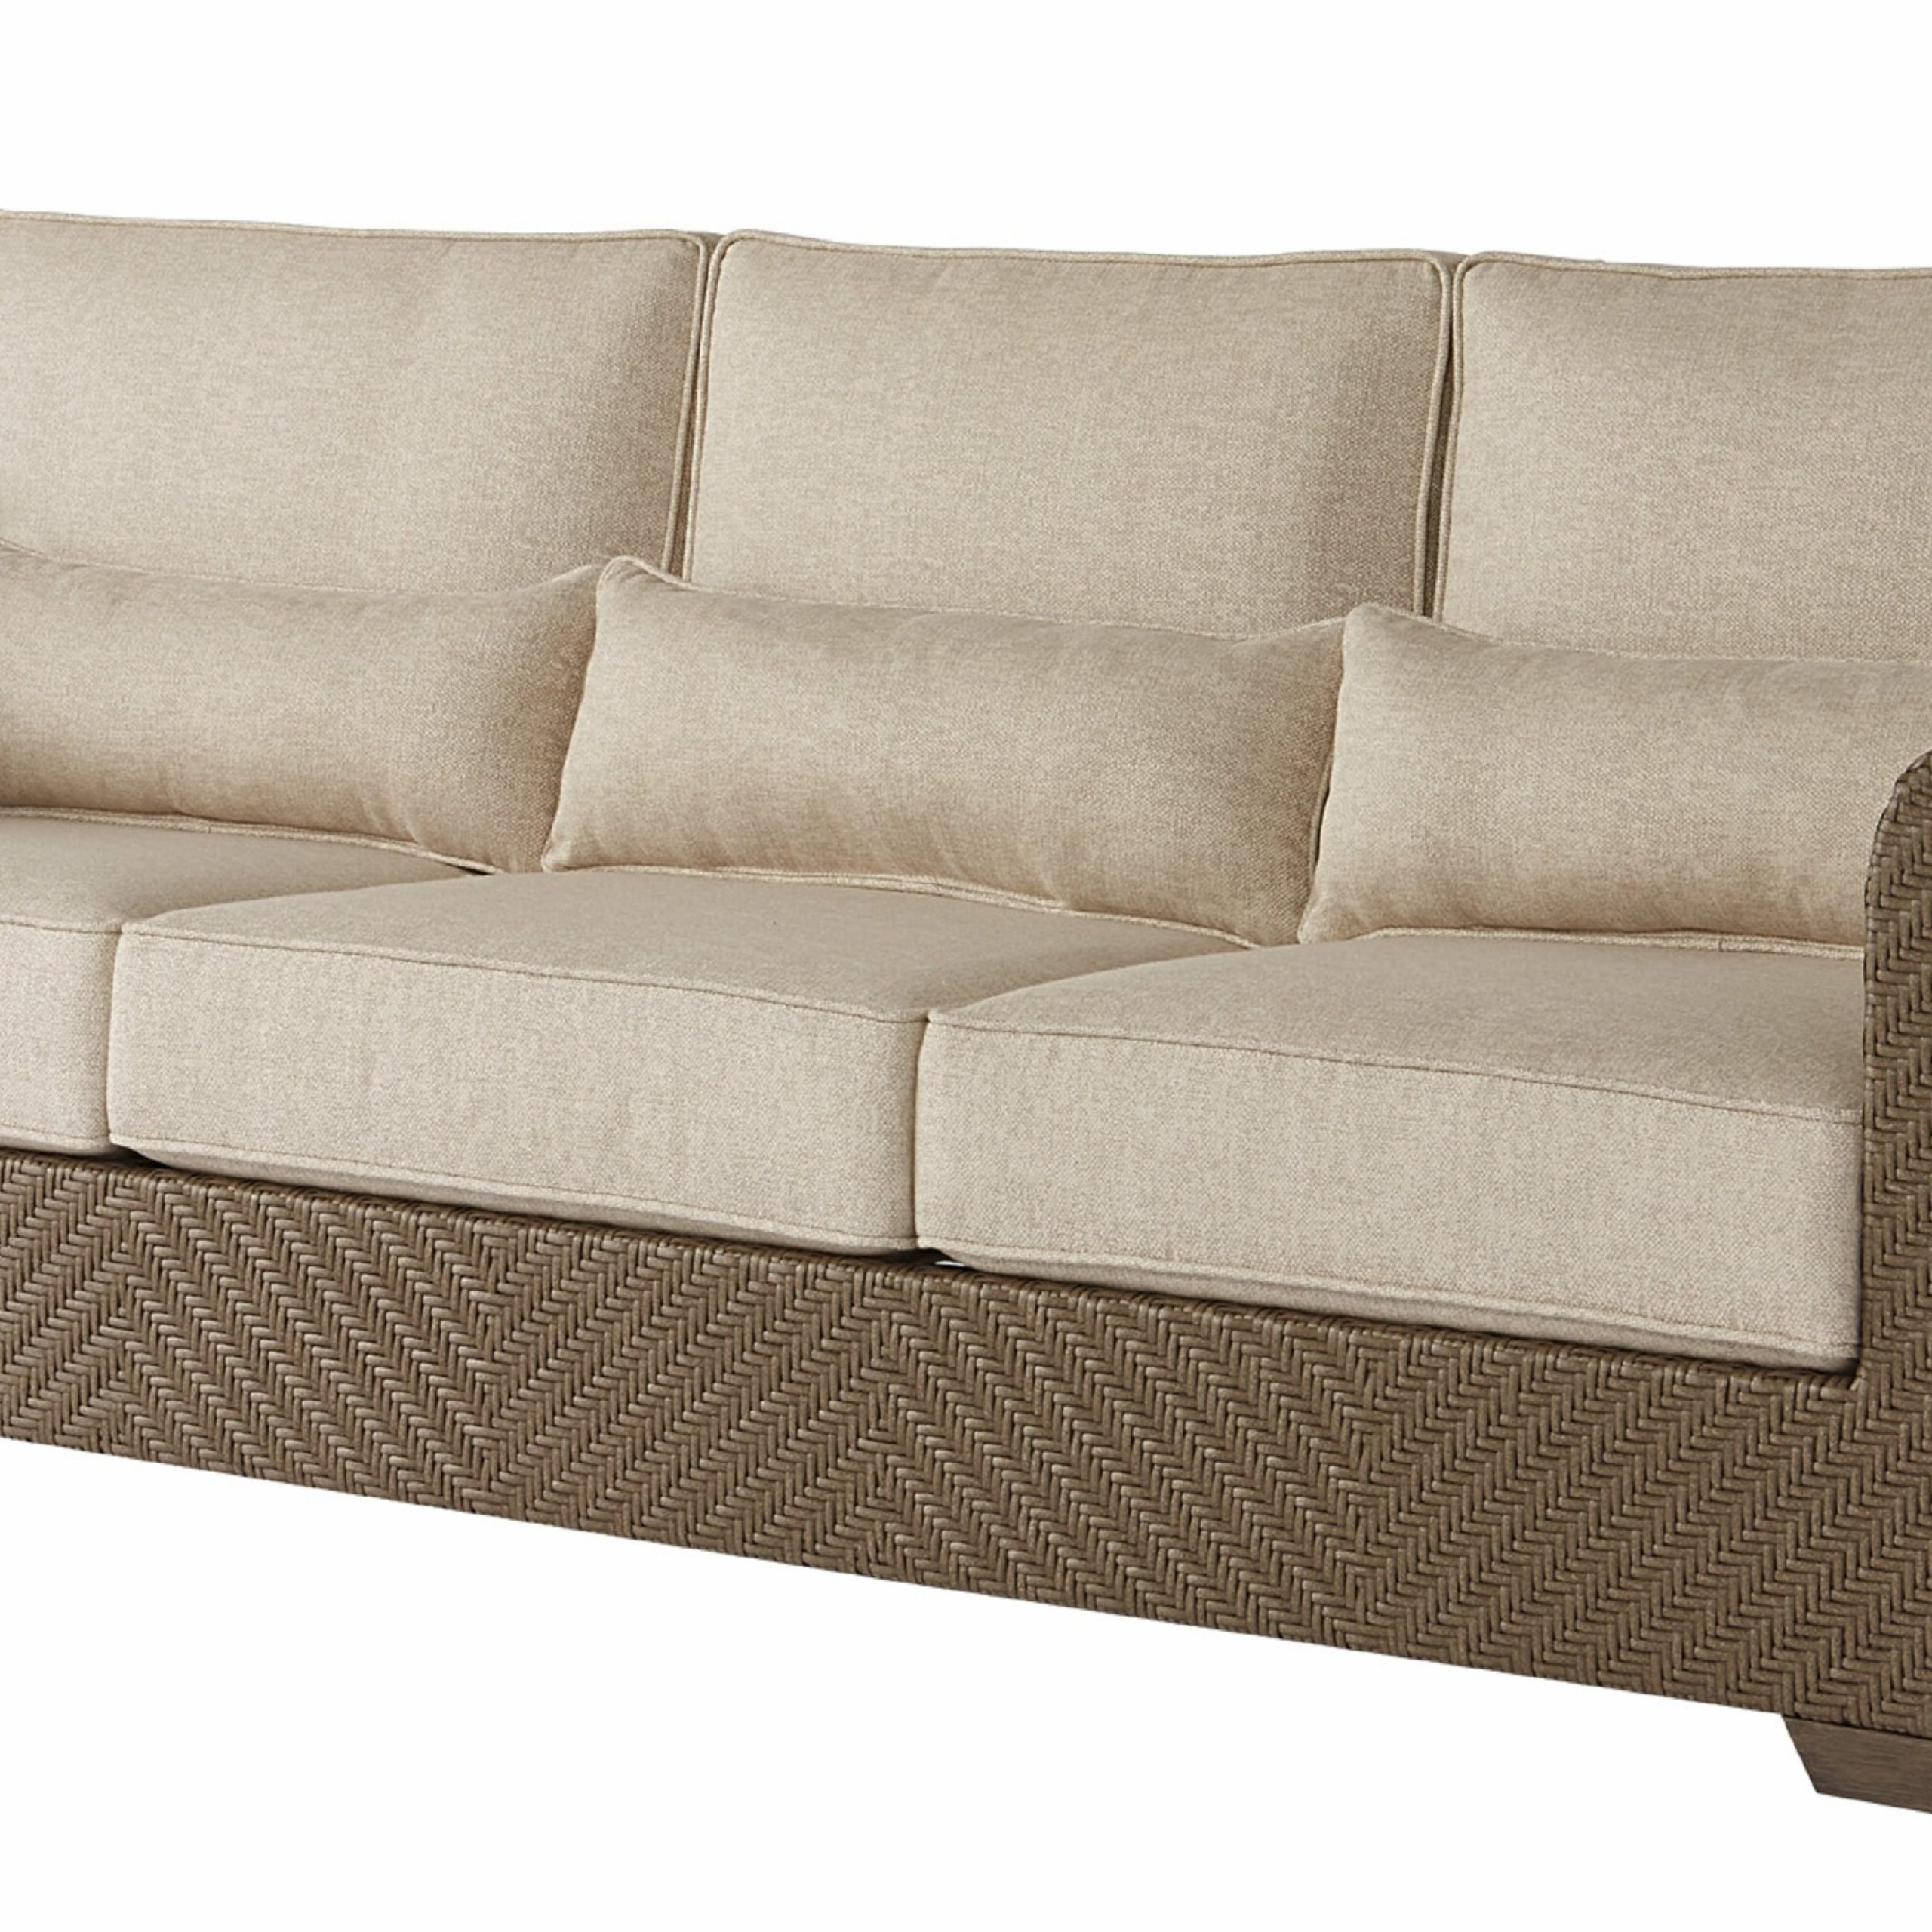 Latest Salvato Sofas With Cushion With Regard To Astrid Wicker Patio Sofa With Cushions (View 2 of 25)